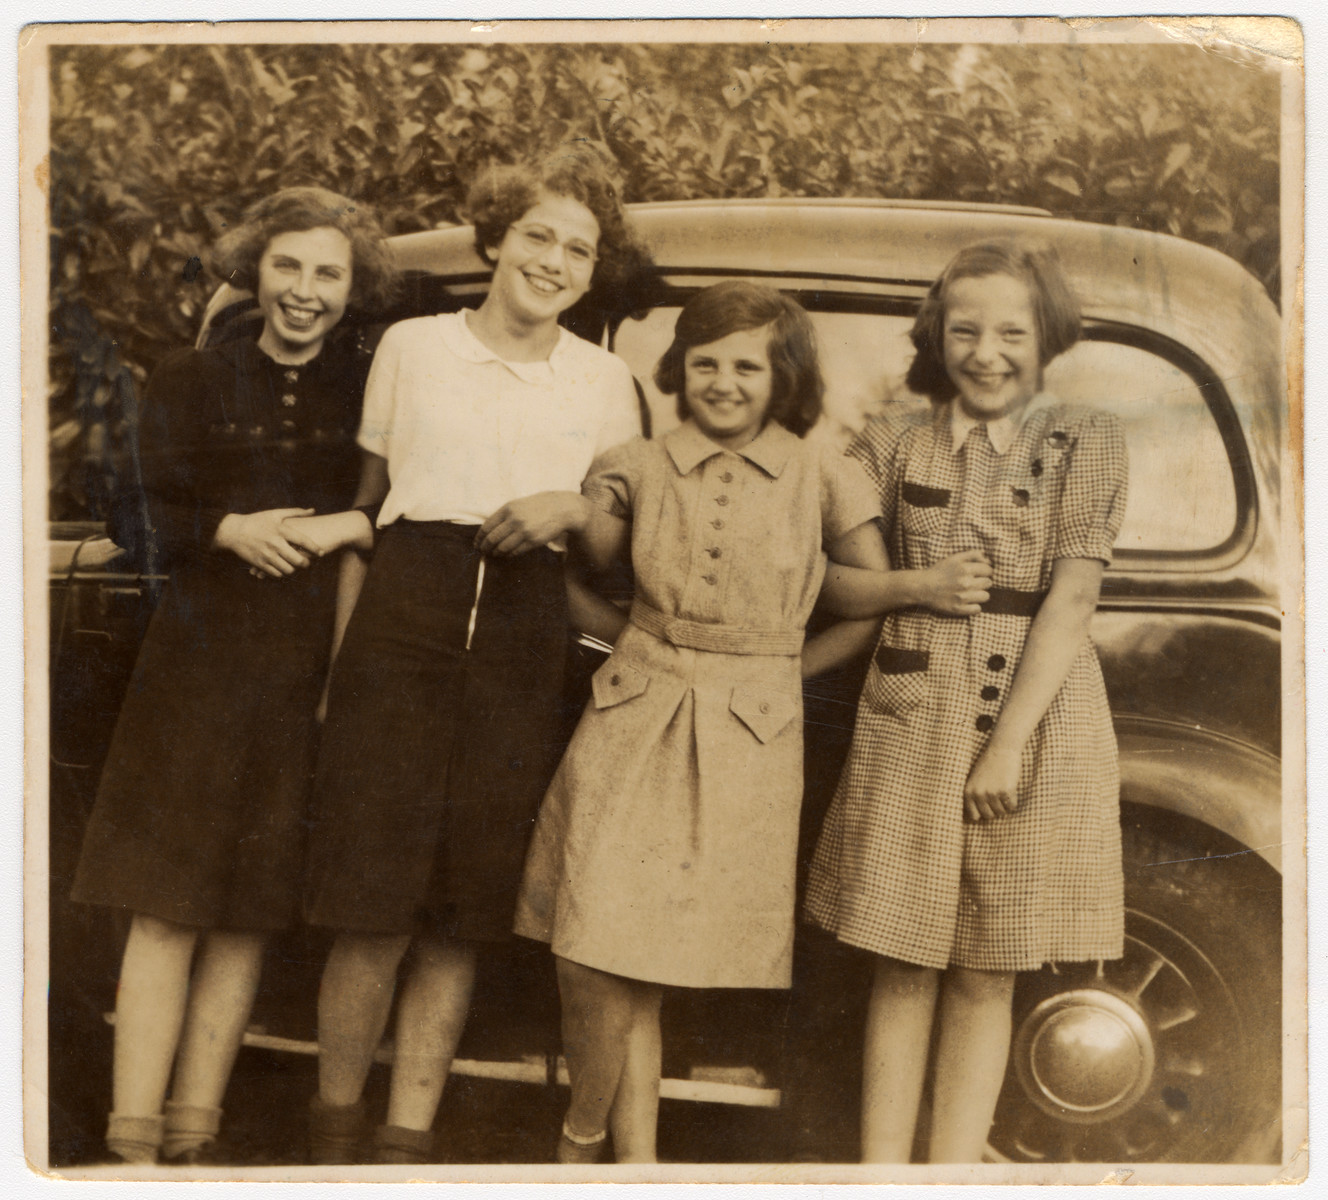 Four Jewish girls who came to England on a Kindertransport pose in front of an automobile   Pictured from the left to the right are: Sophie Goldschmidt-Stern, Ruth Adametz-Cohen and Margot Hirschi.